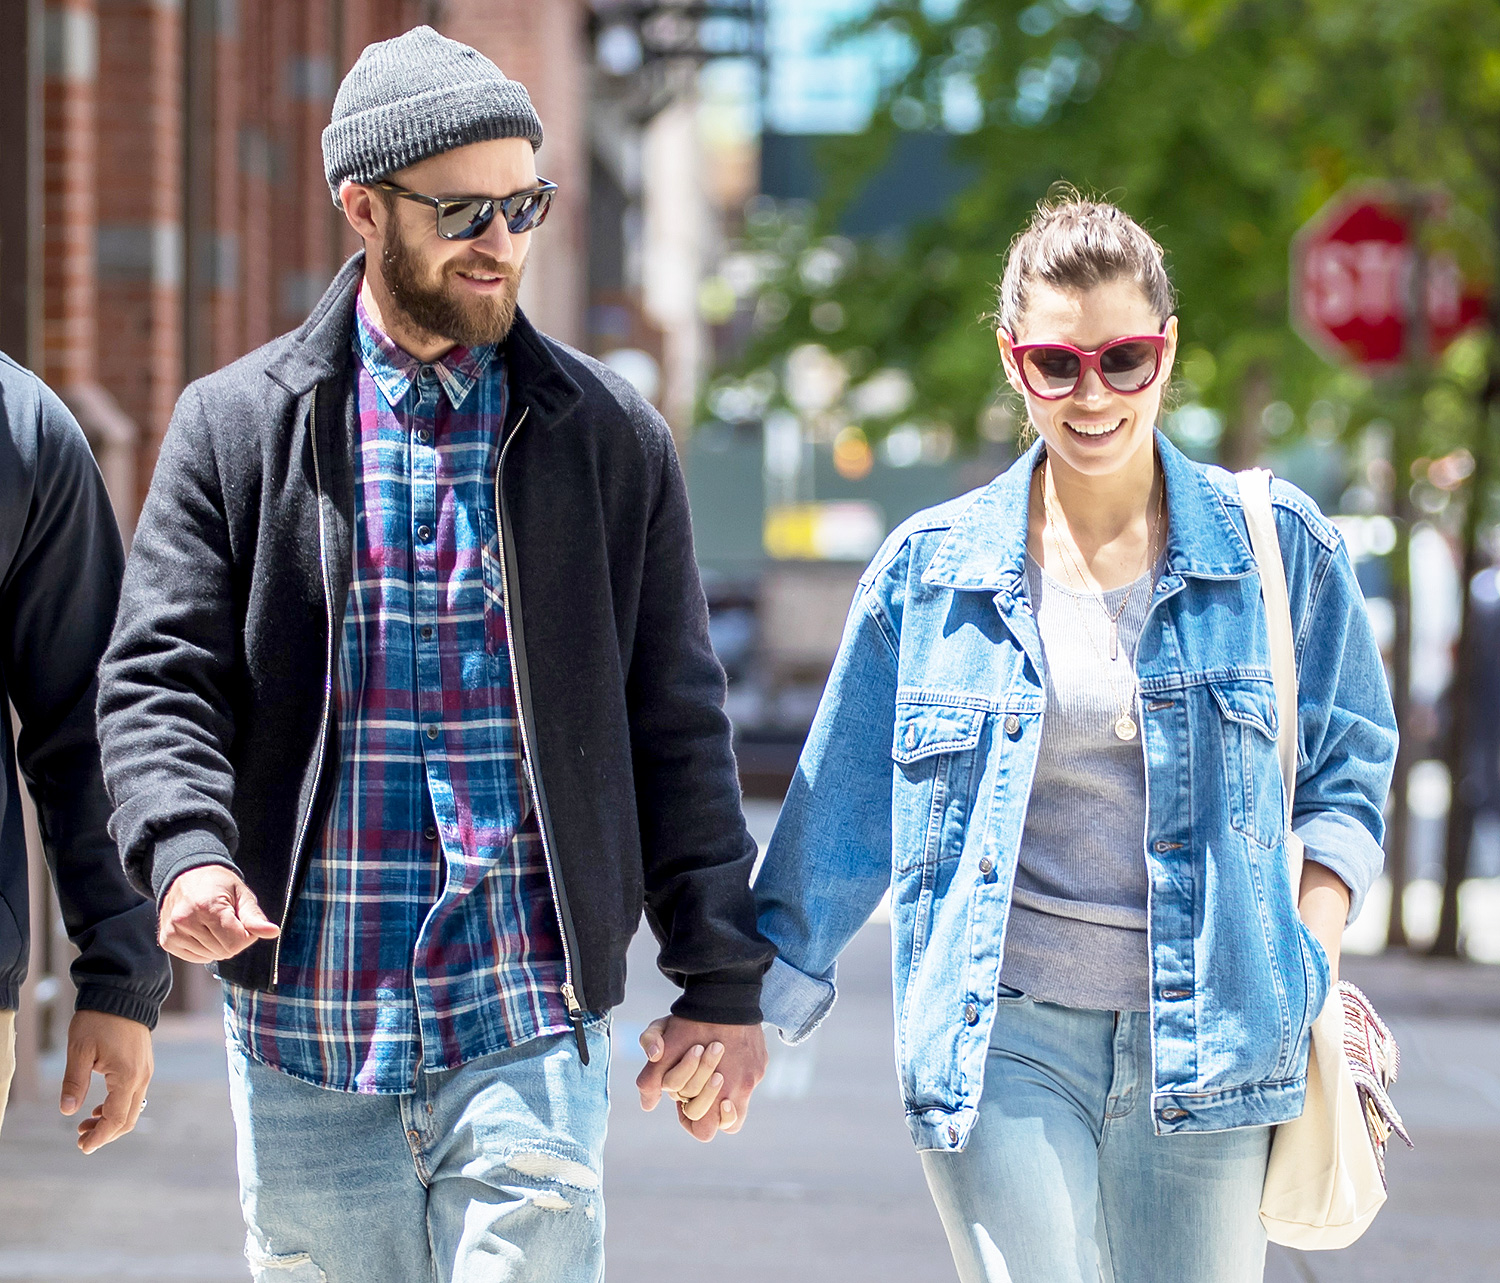 EXCLUSIVE: Justin Timberlake and Jessica Biel are Spotted Holding Hands While Out on a Walk in NYC